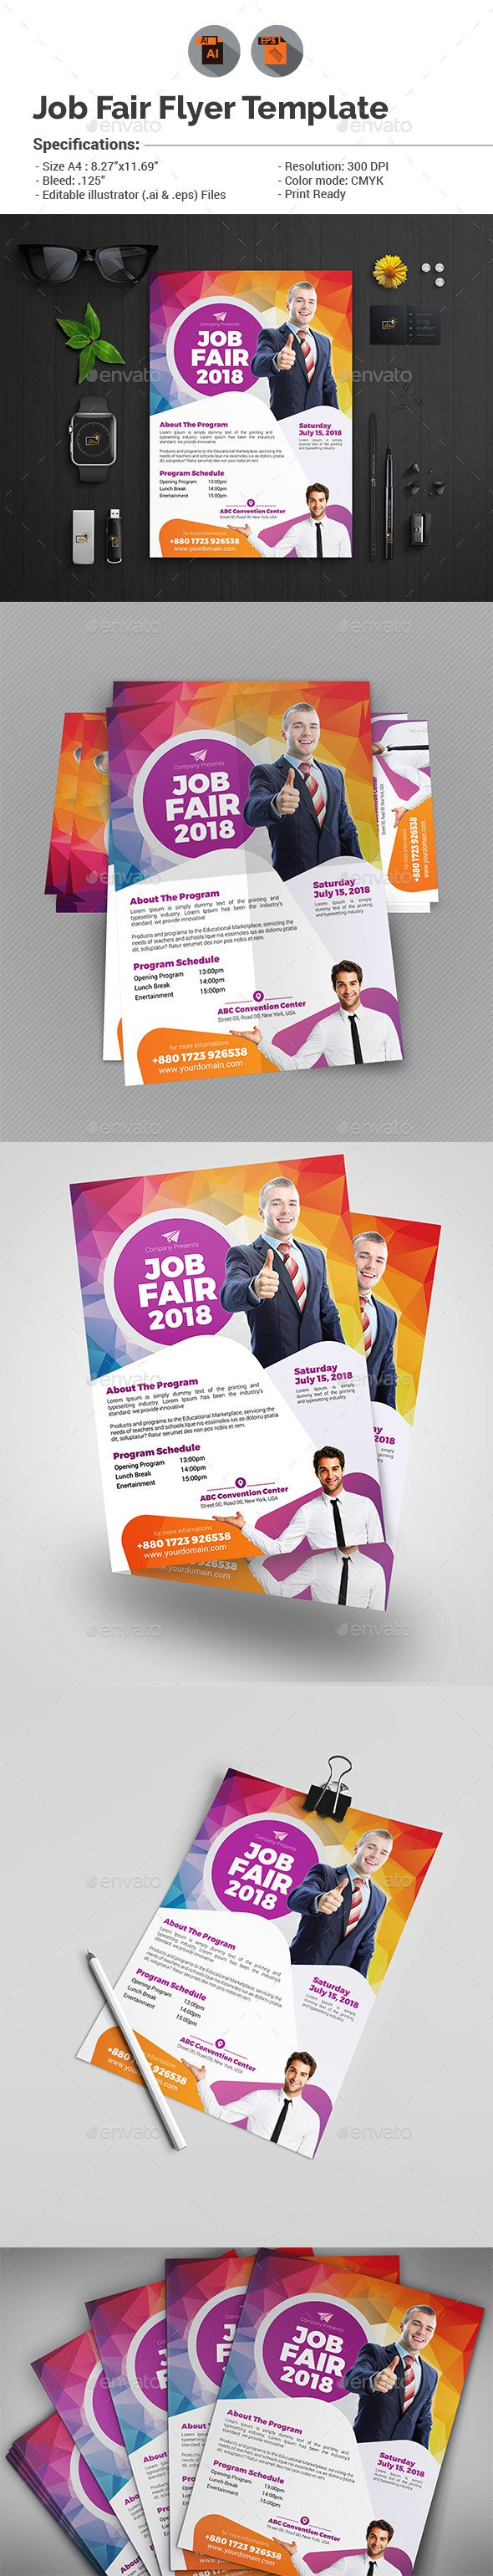 Job Fair Flyer Template Job Fair Flyer Template V2 by Aam360